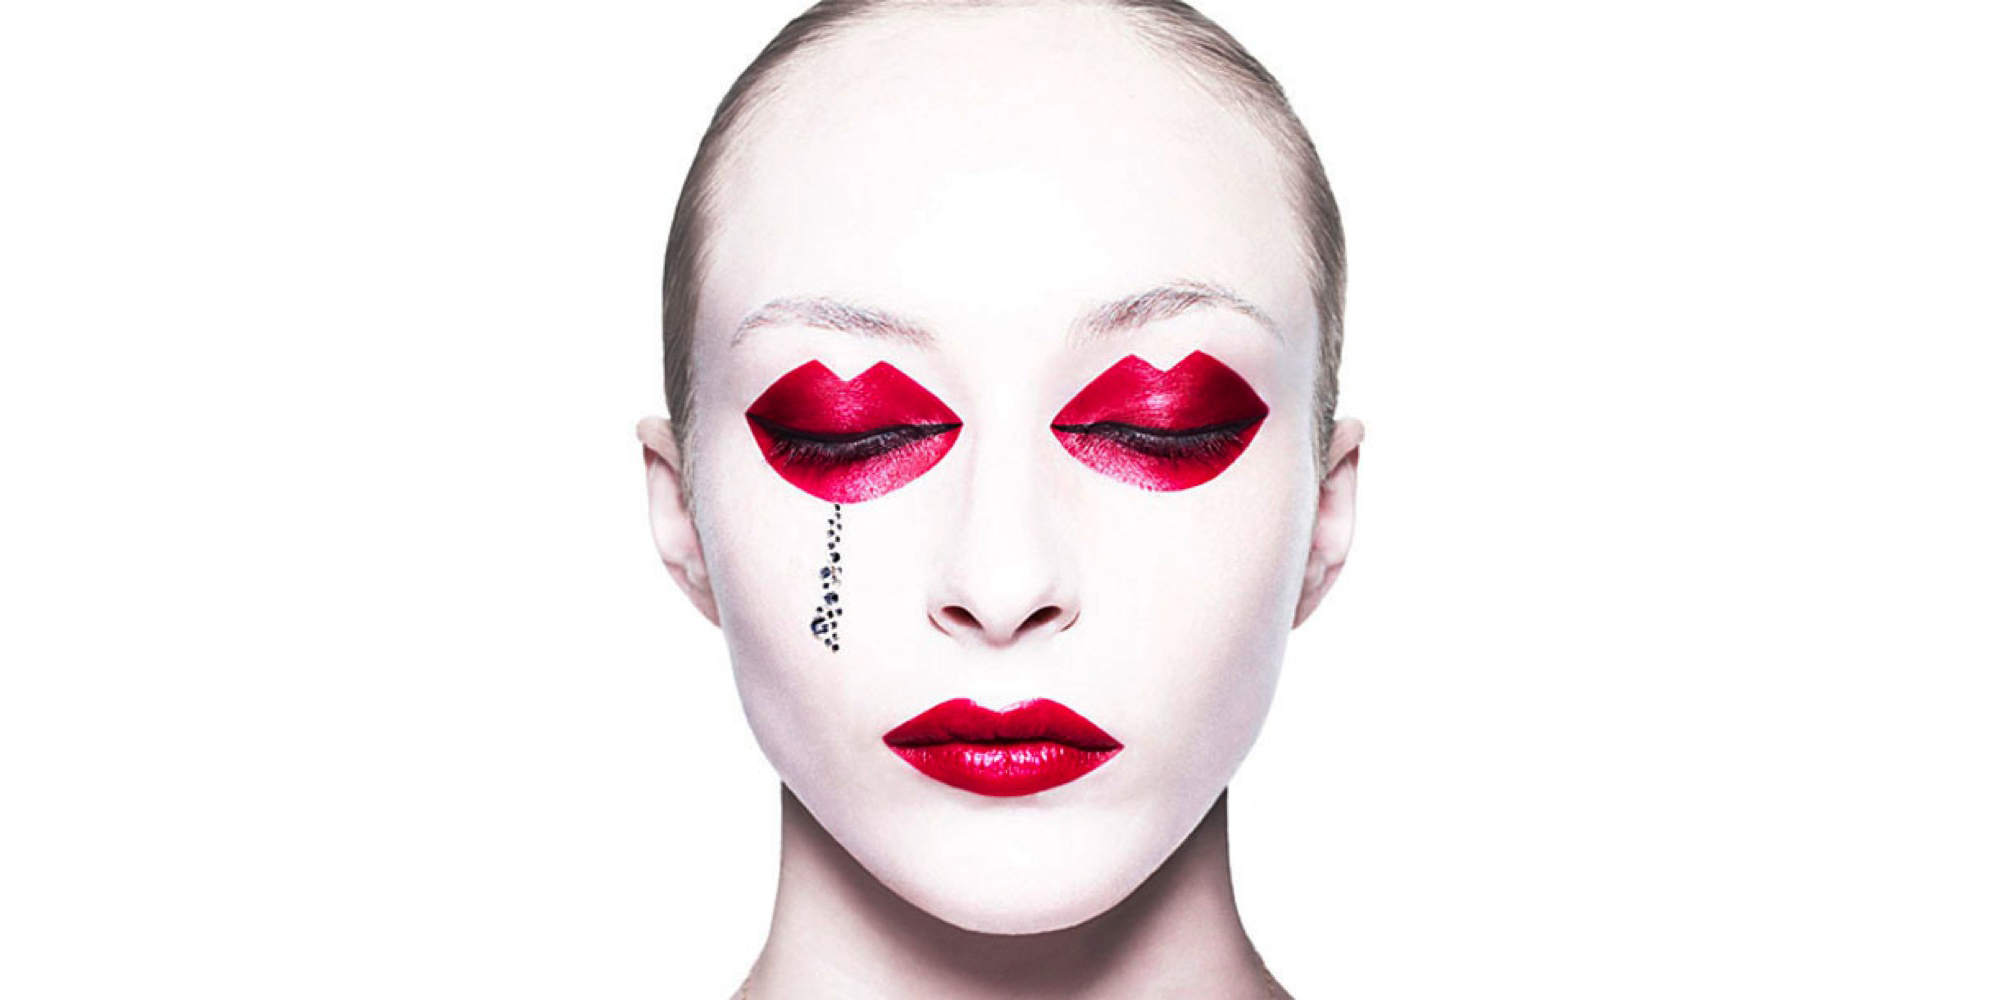 Eccentric Makeup and Photography by Rankin